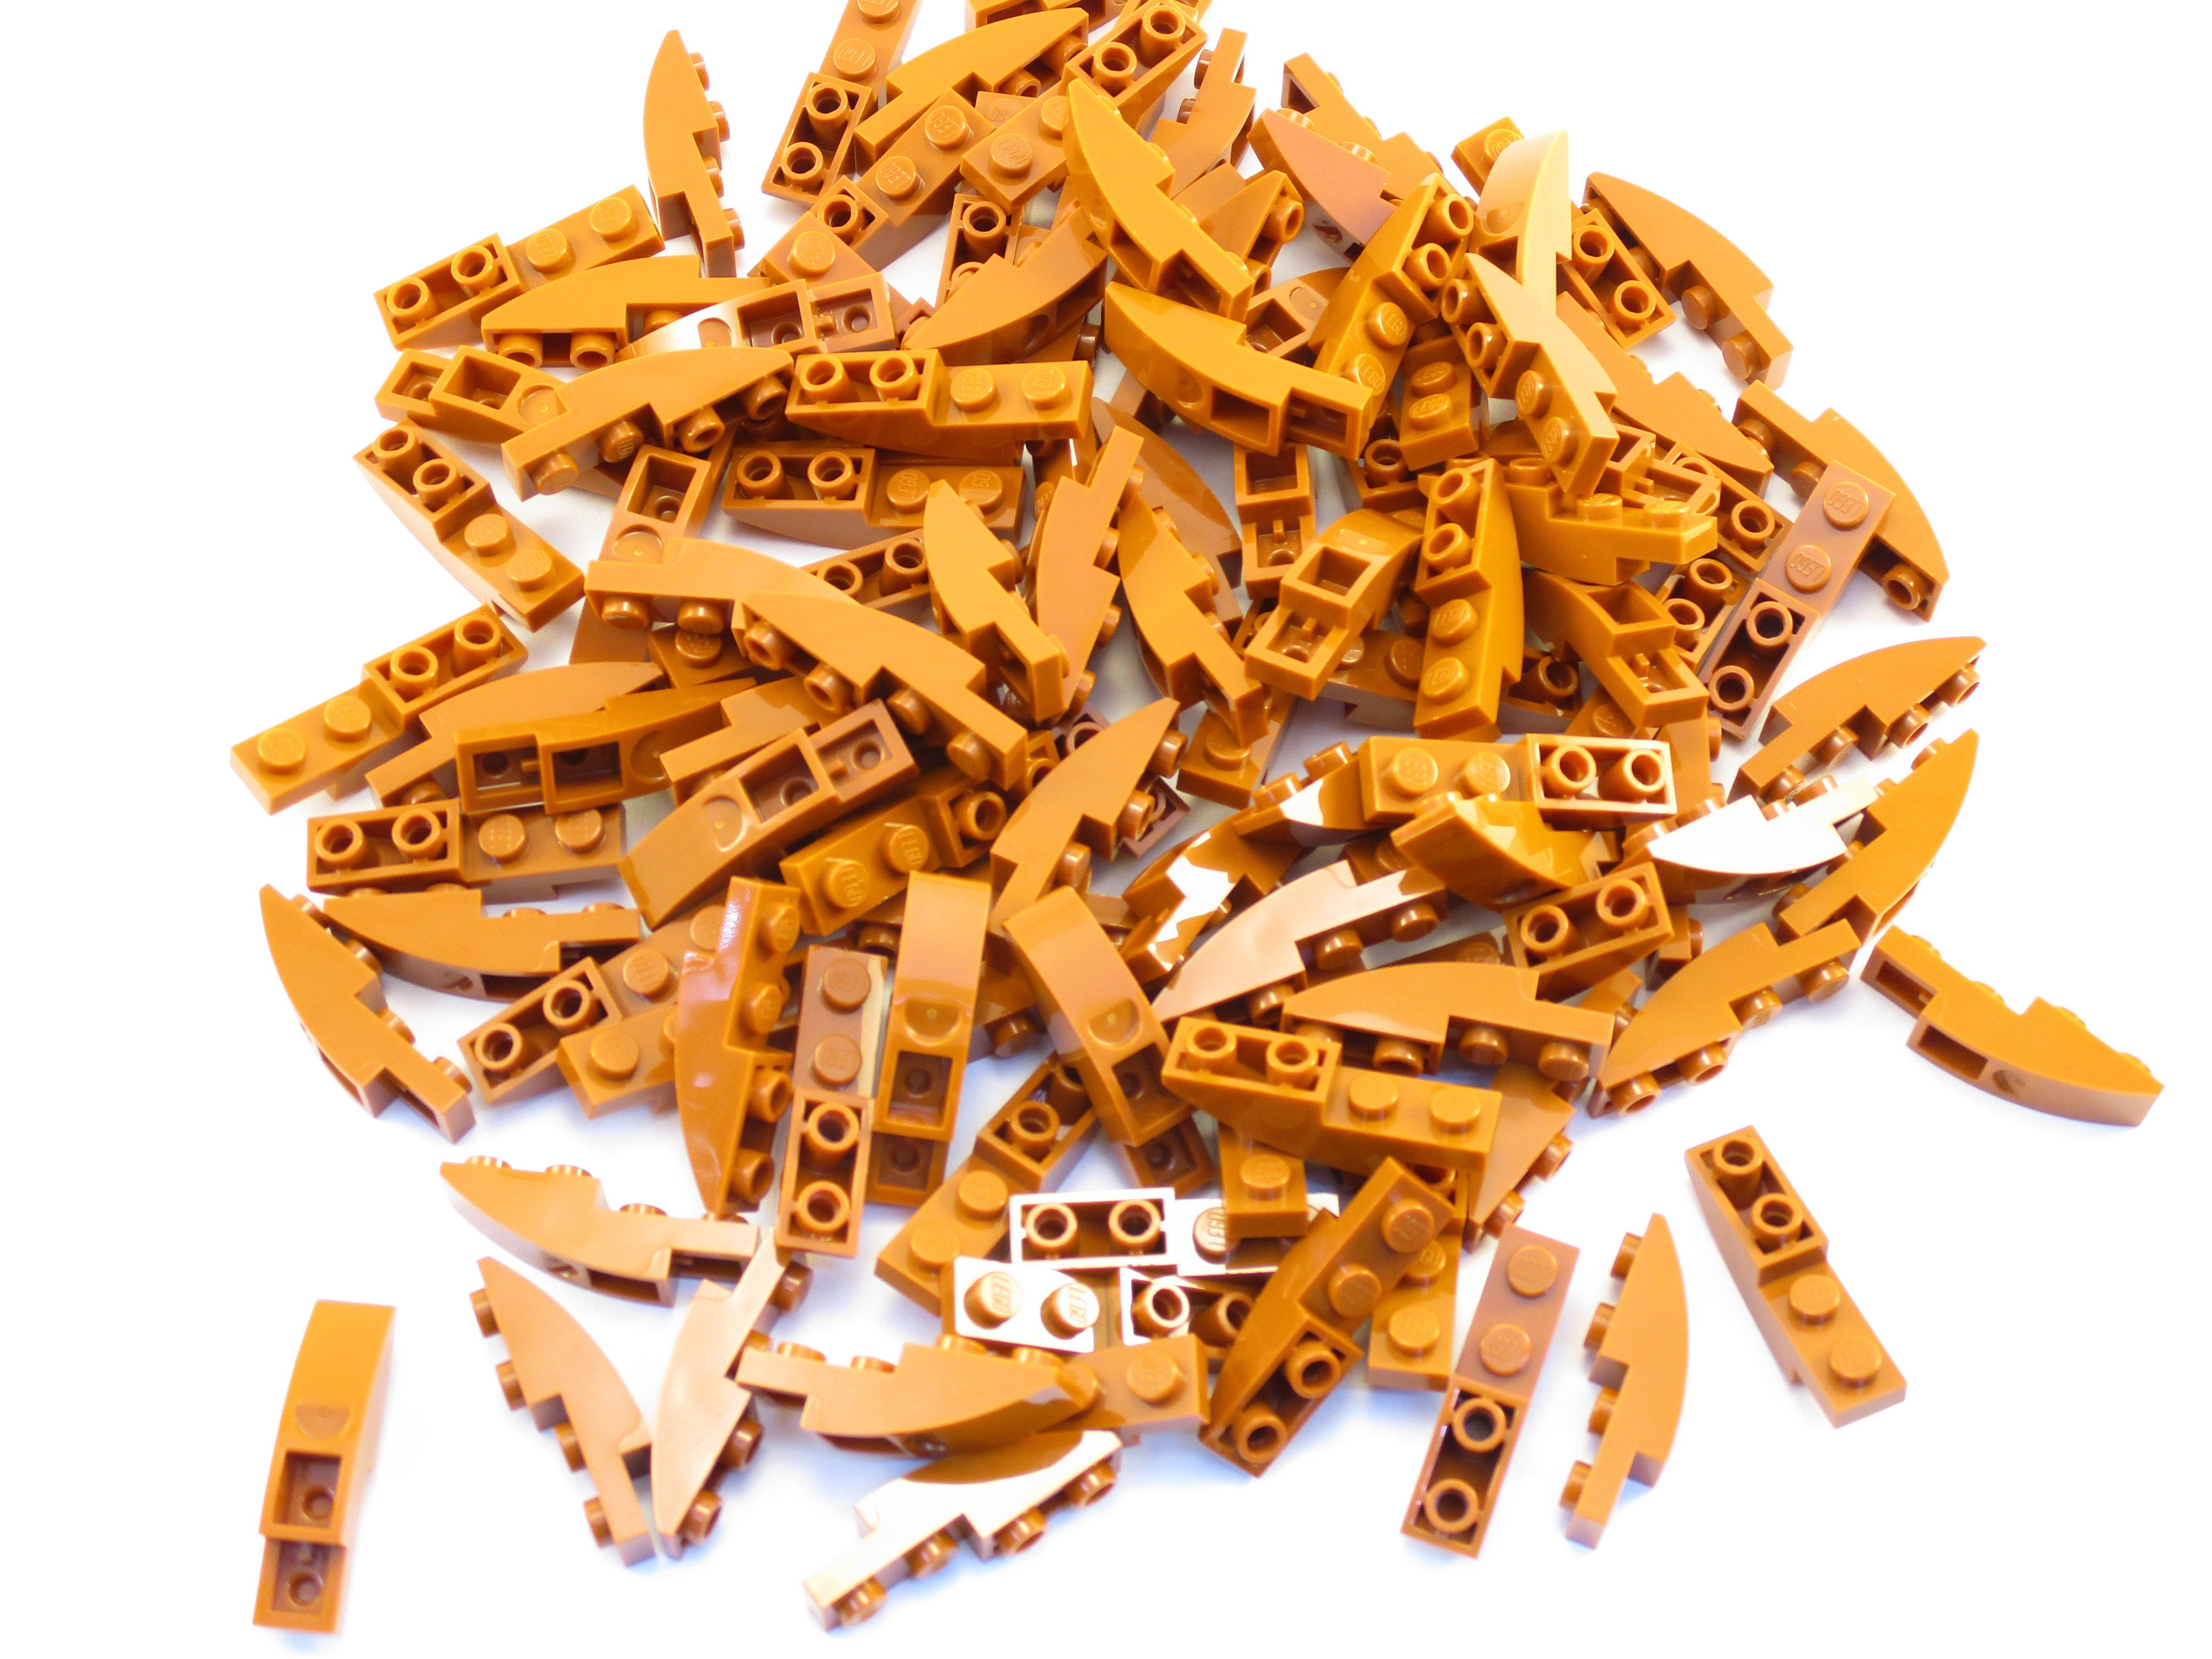 LEGO Dark Orange Slope Curved 4x1 Inverted Lot of 100 Parts Pieces 13547